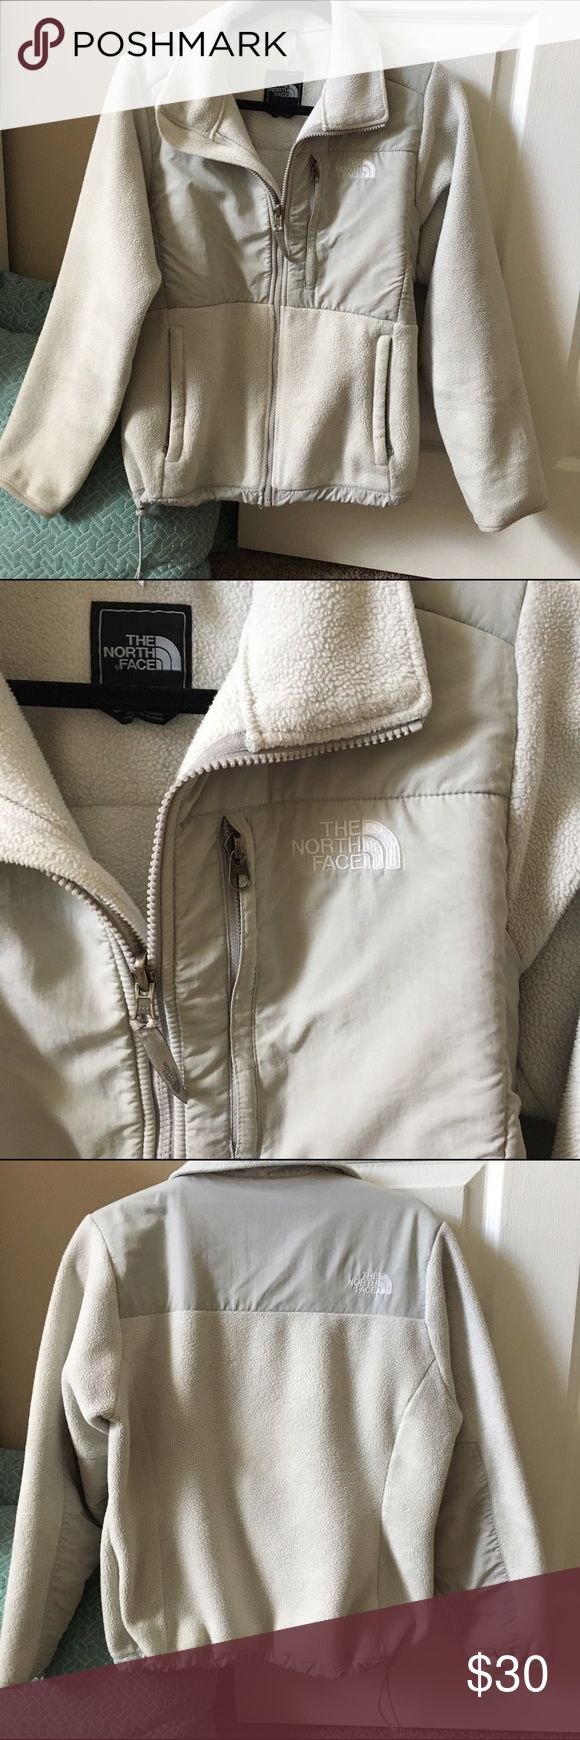 White North Face Jacket This jacket is in good wearable condition. The white fleece is a bit discolored and not as soft as when first bought! Open to some offers! The North Face Jackets & Coats